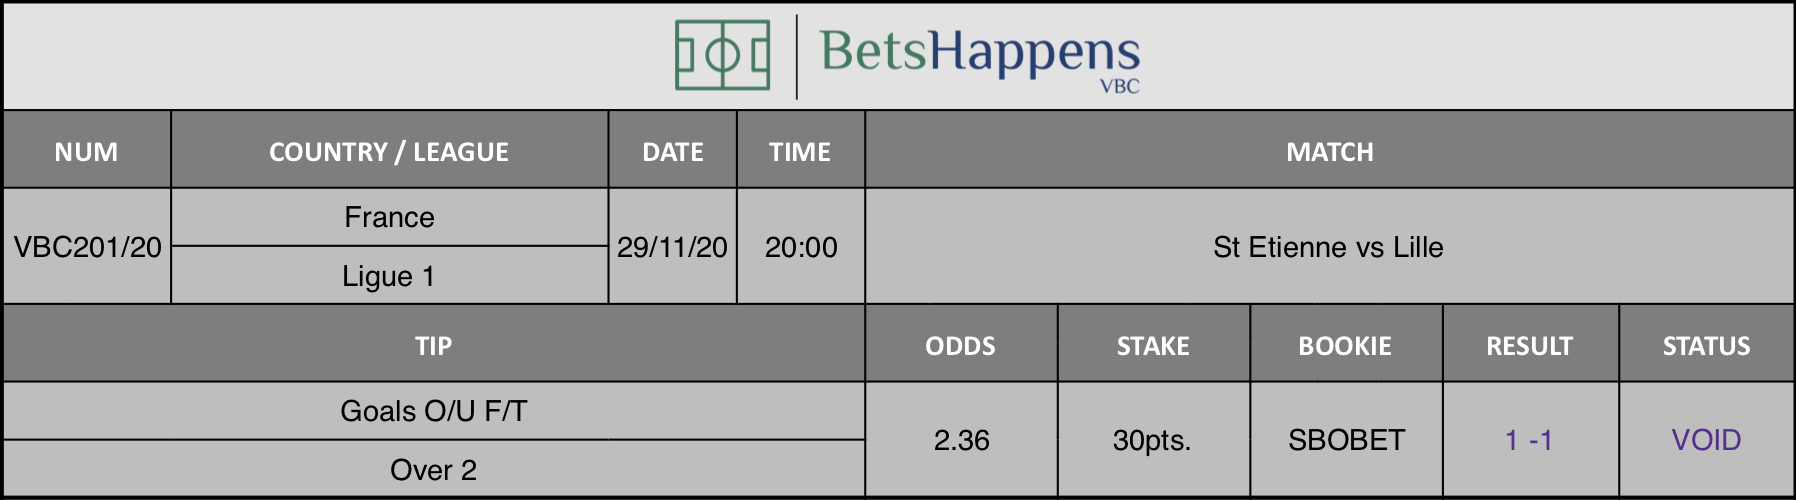 Results of our tip for the St Etienne vs Lille match where Goals O/U F/T Over 2 is recommended.